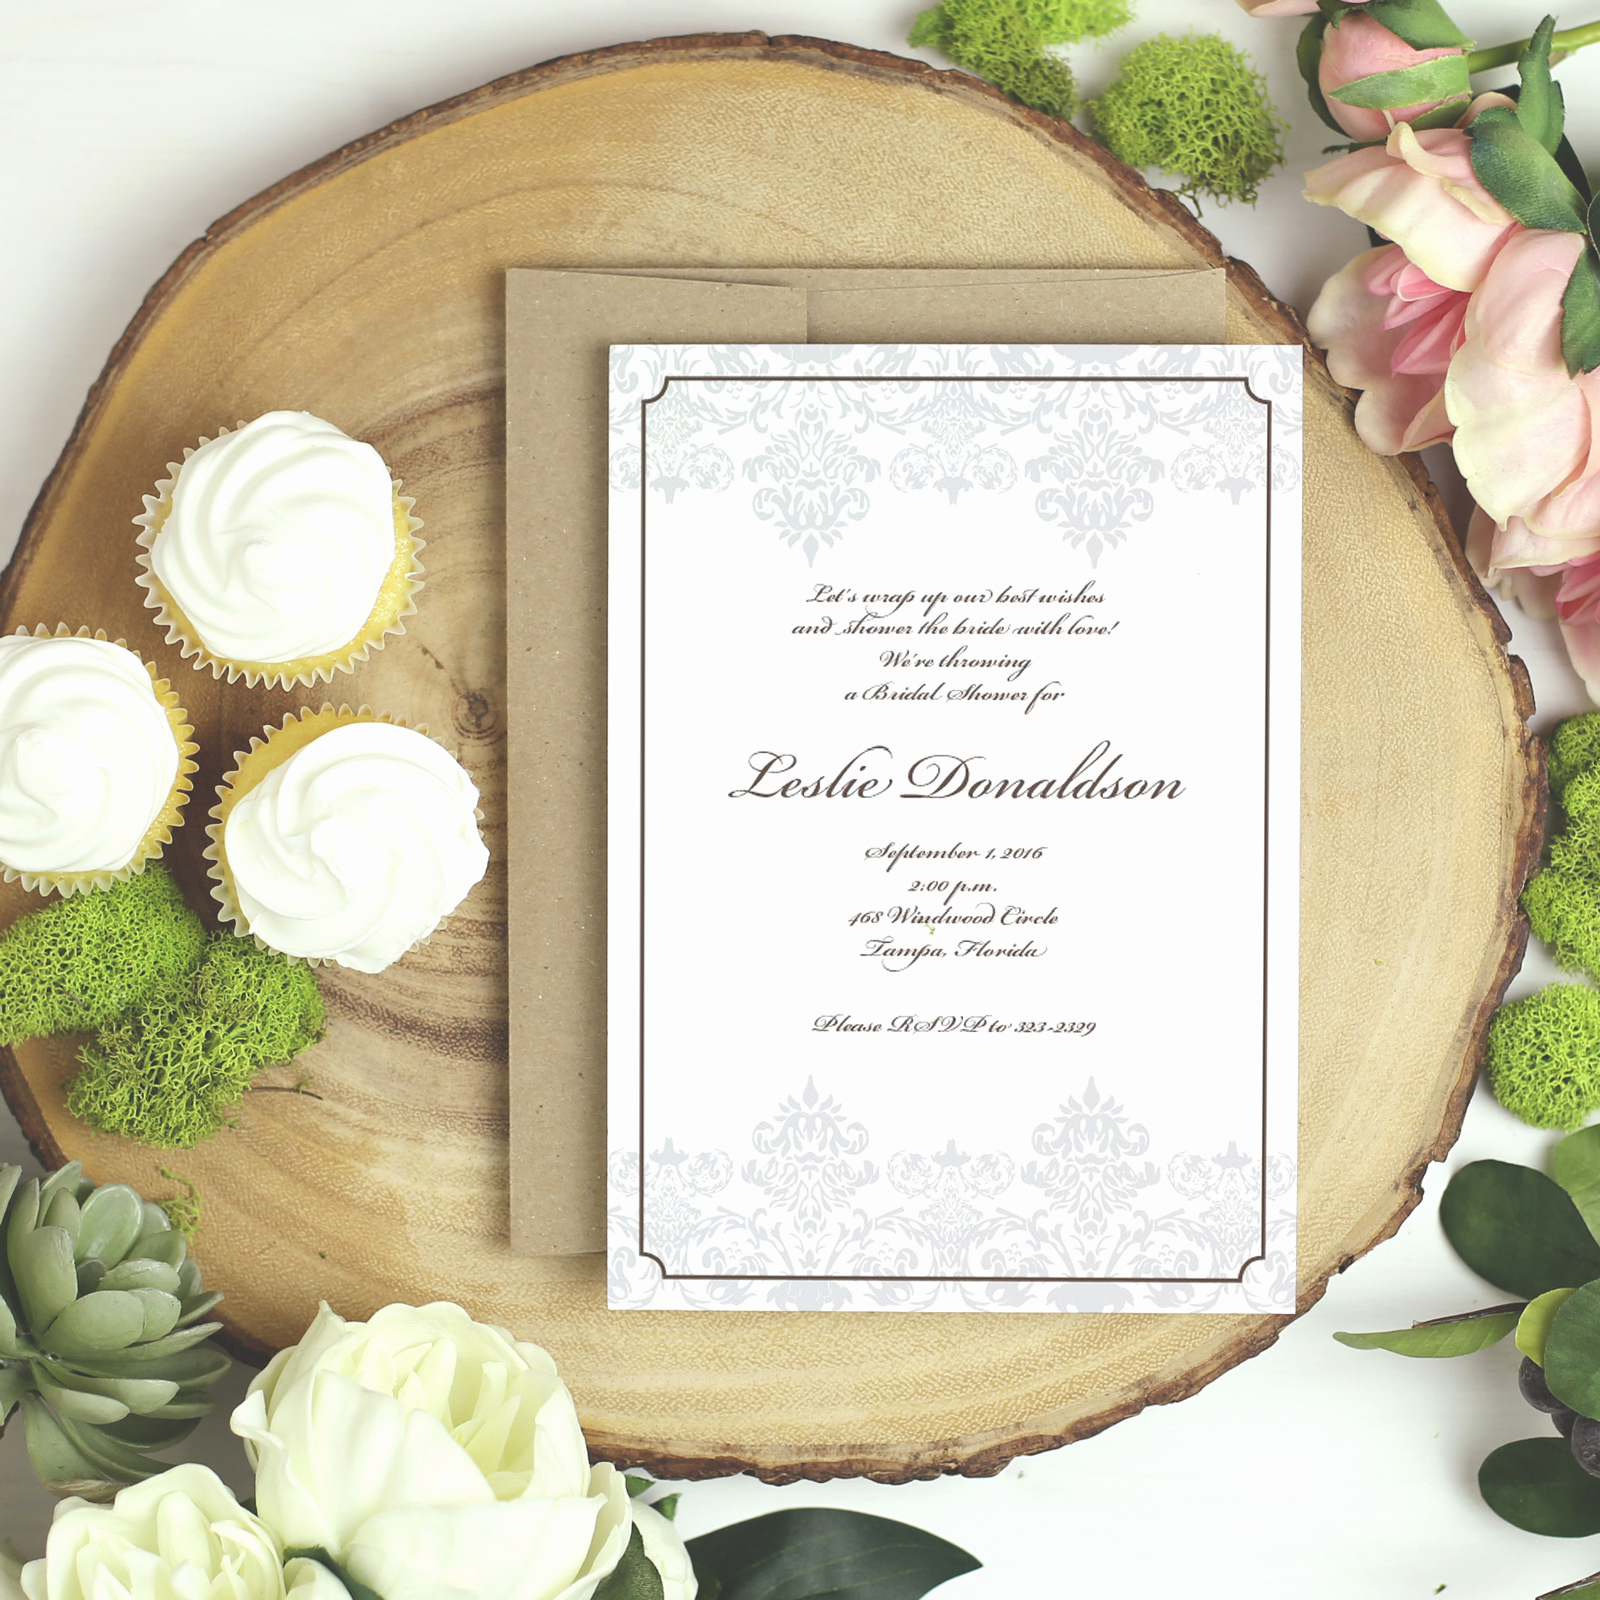 Best Wedding Invitation Cards Designs Elegant Most Stylish Wedding Invitation Cards to Buy Best Designs